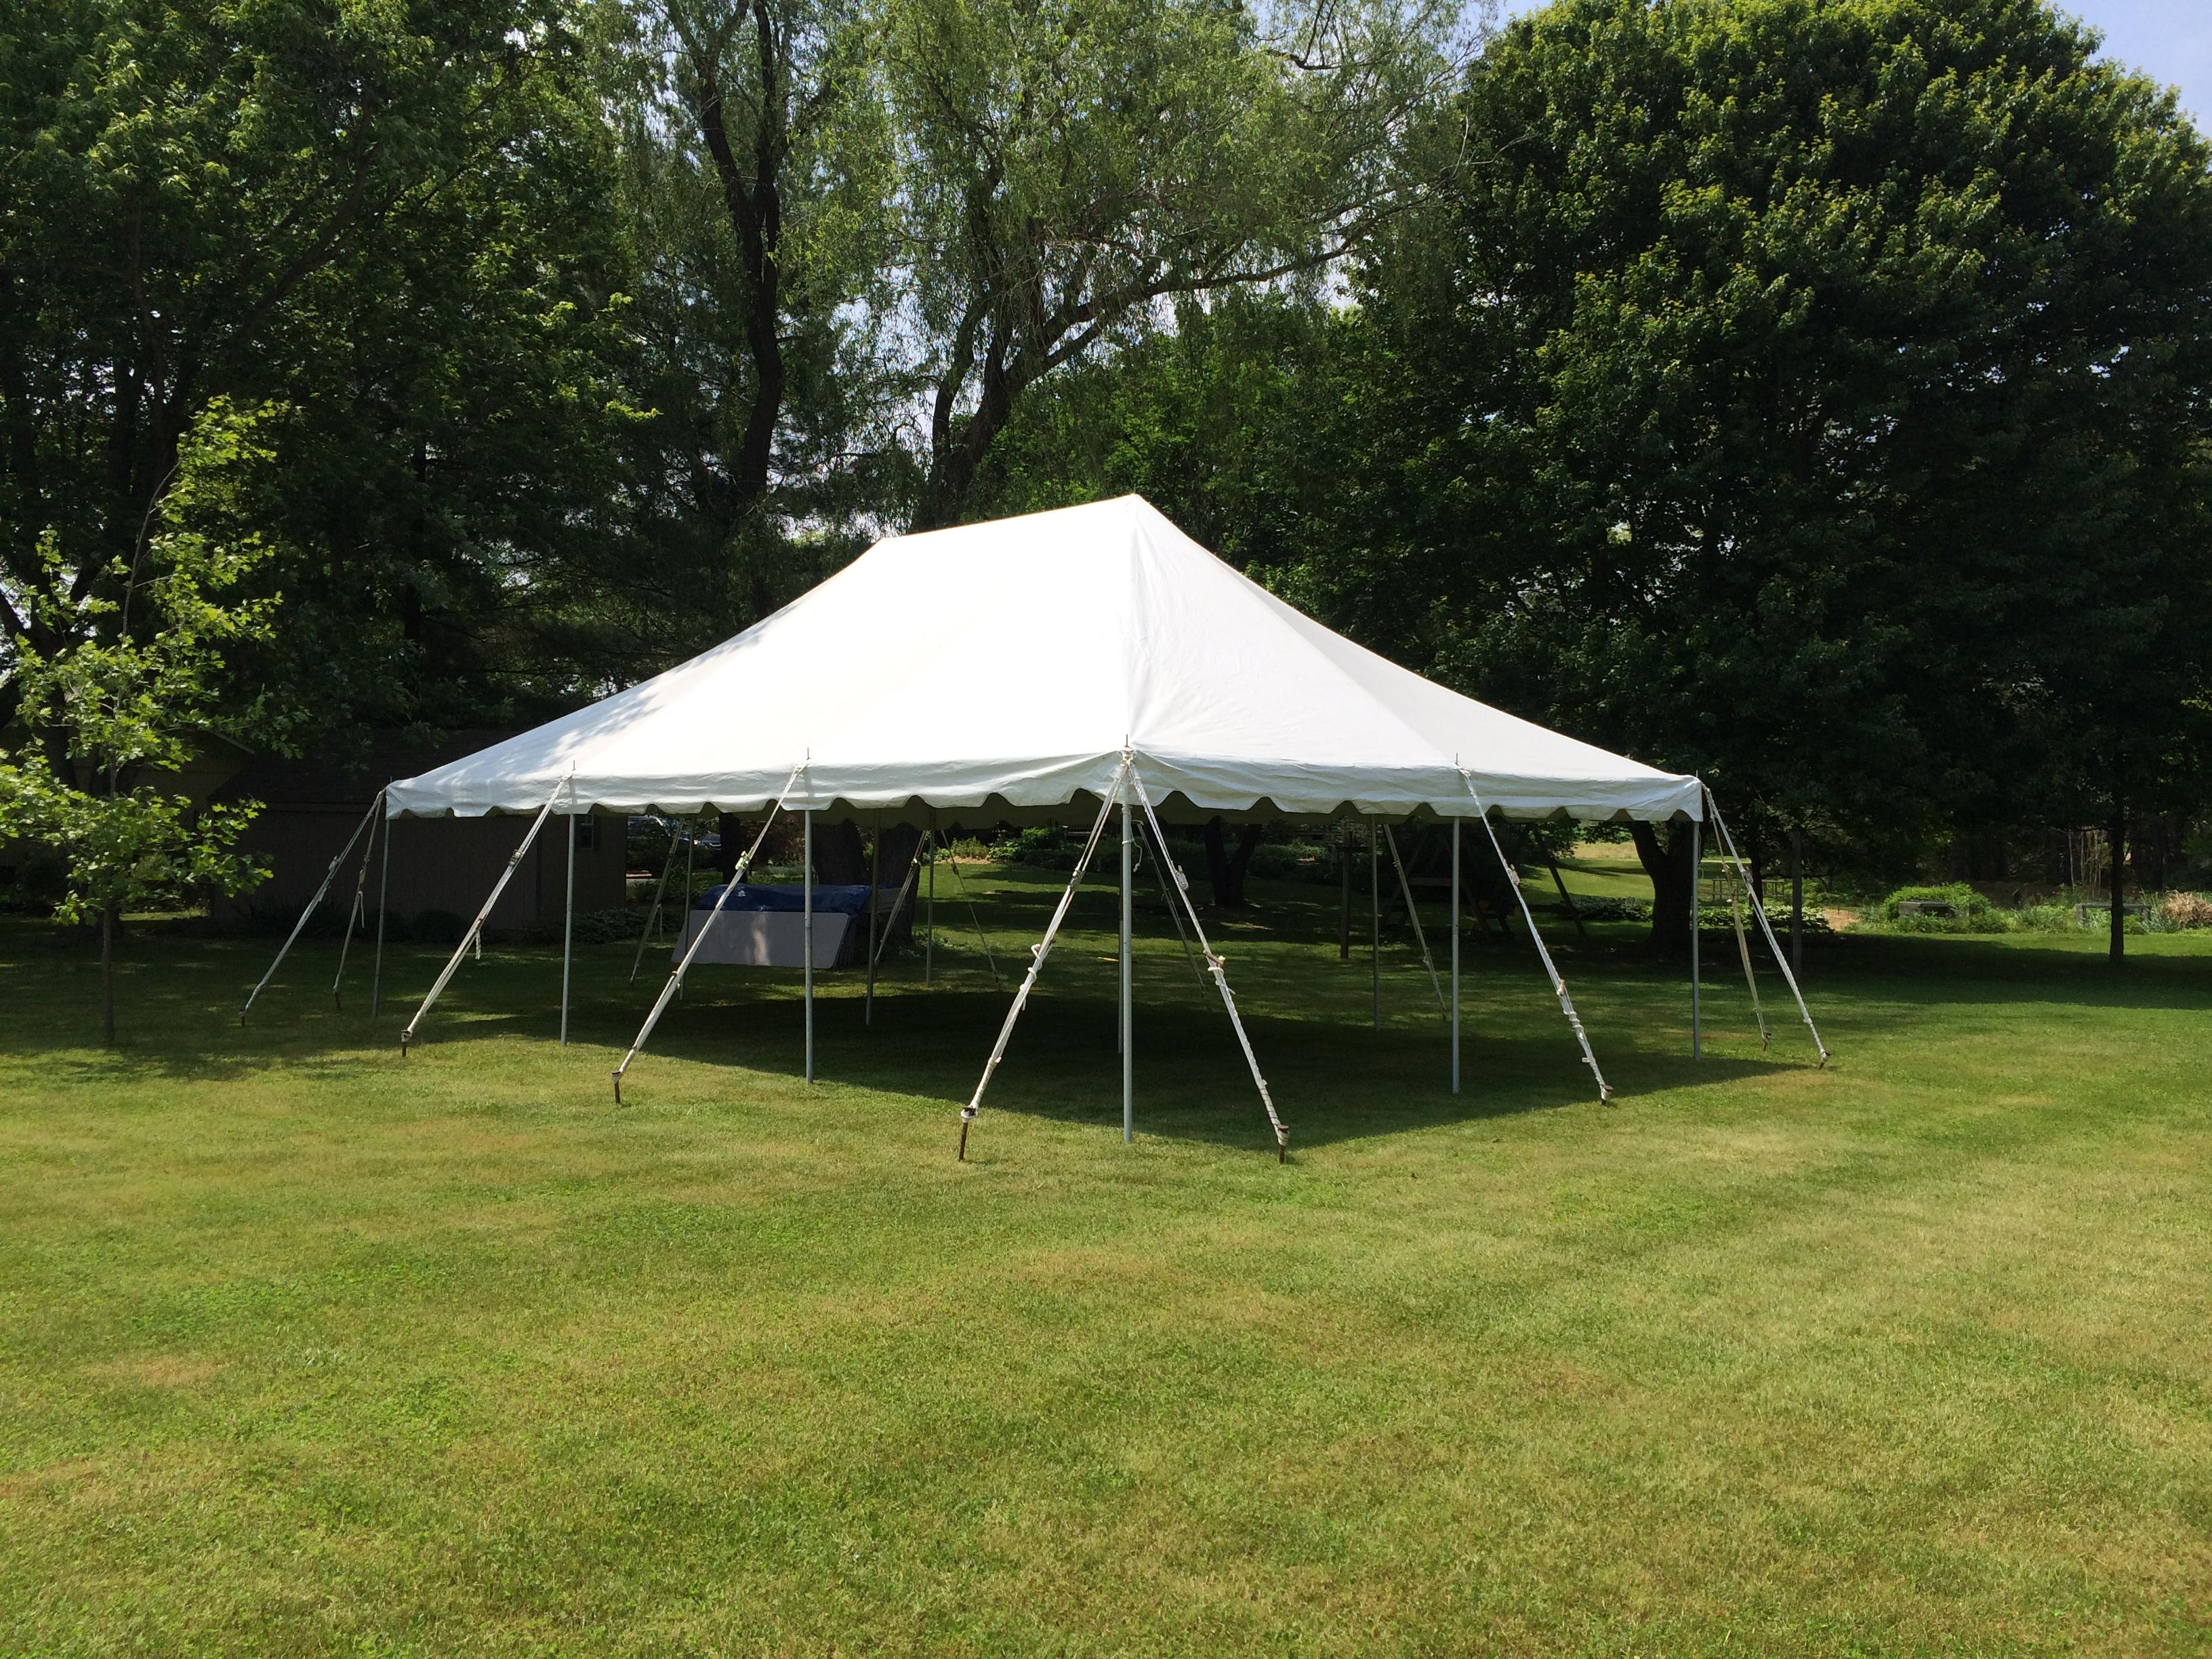 Tent And Chair Rentals Karcher Event Rental Llc Tents Tables Chairs And